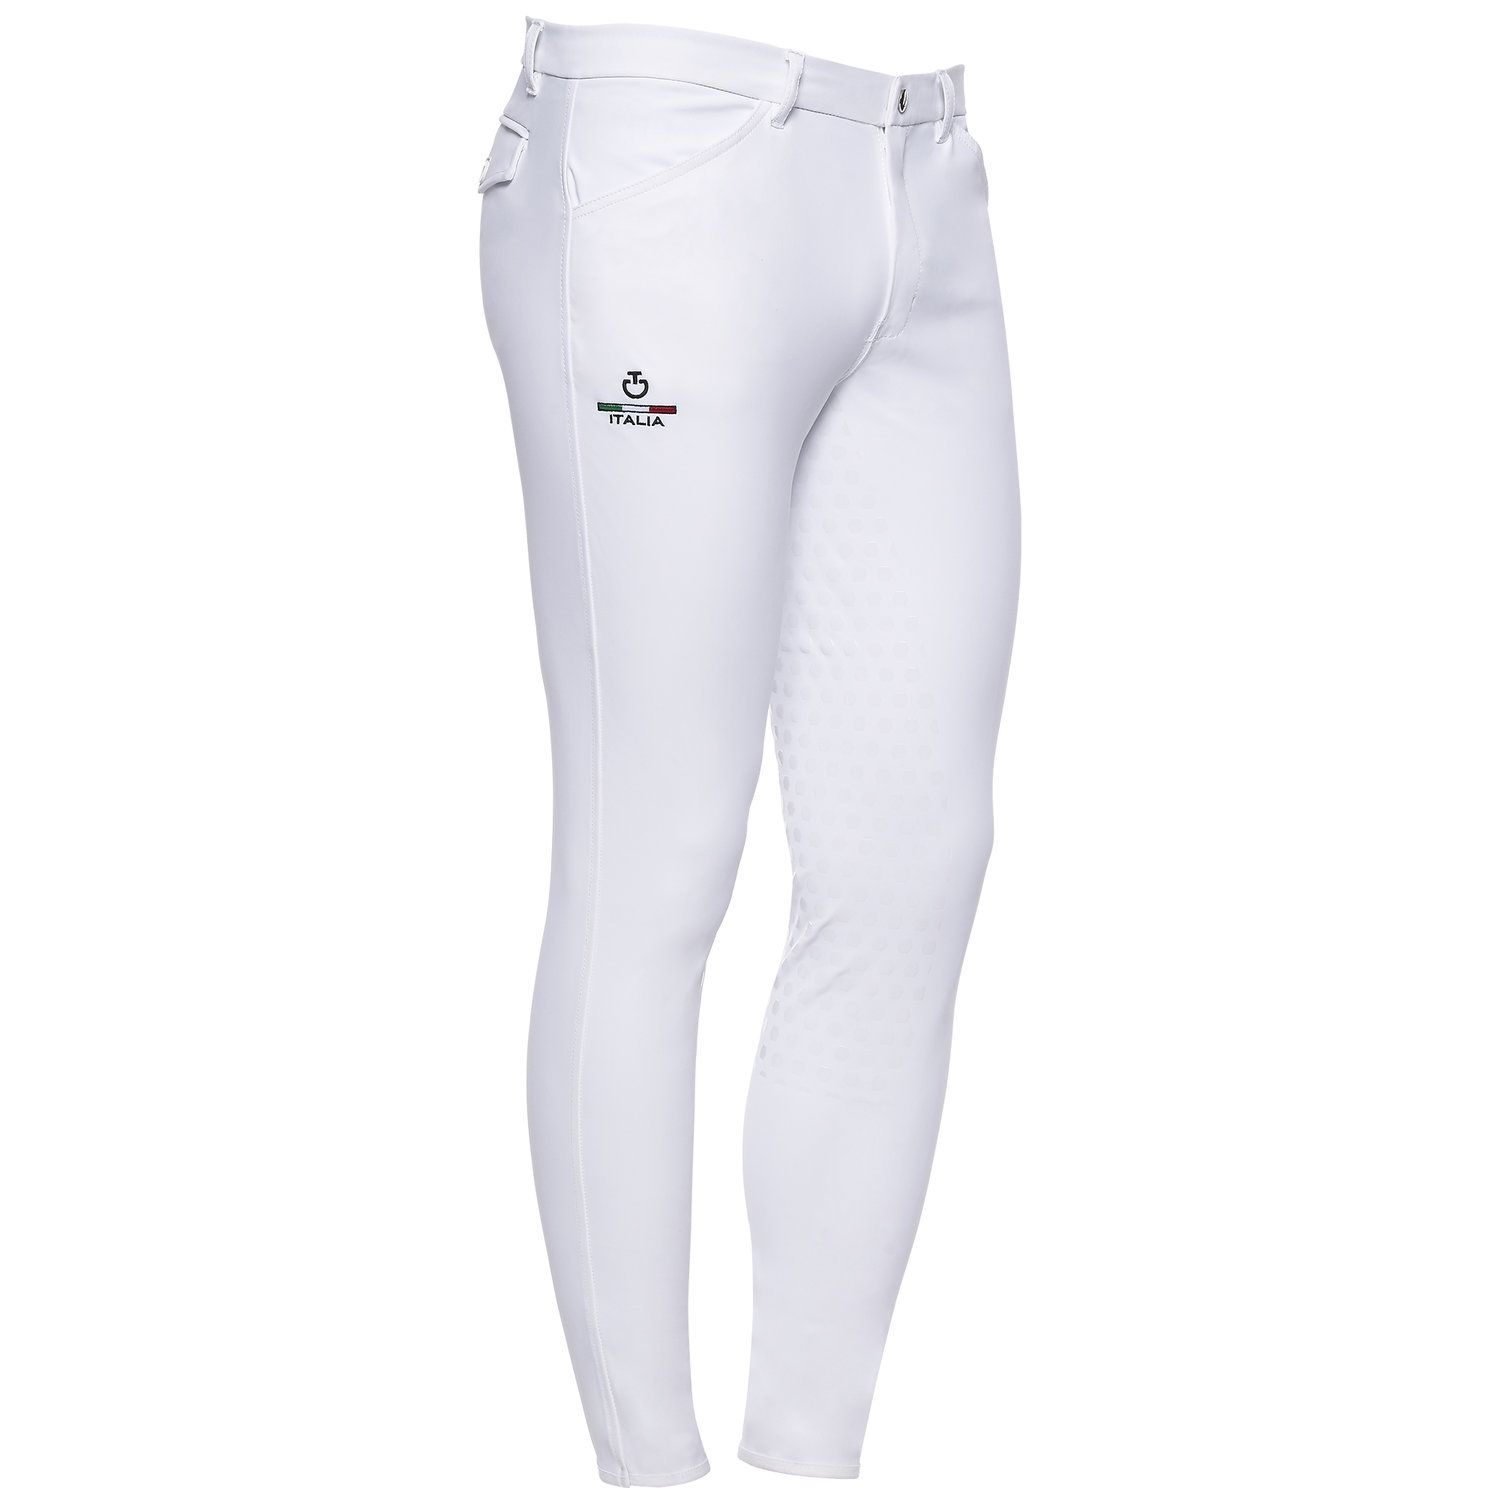 Men's FISE full grip breeches